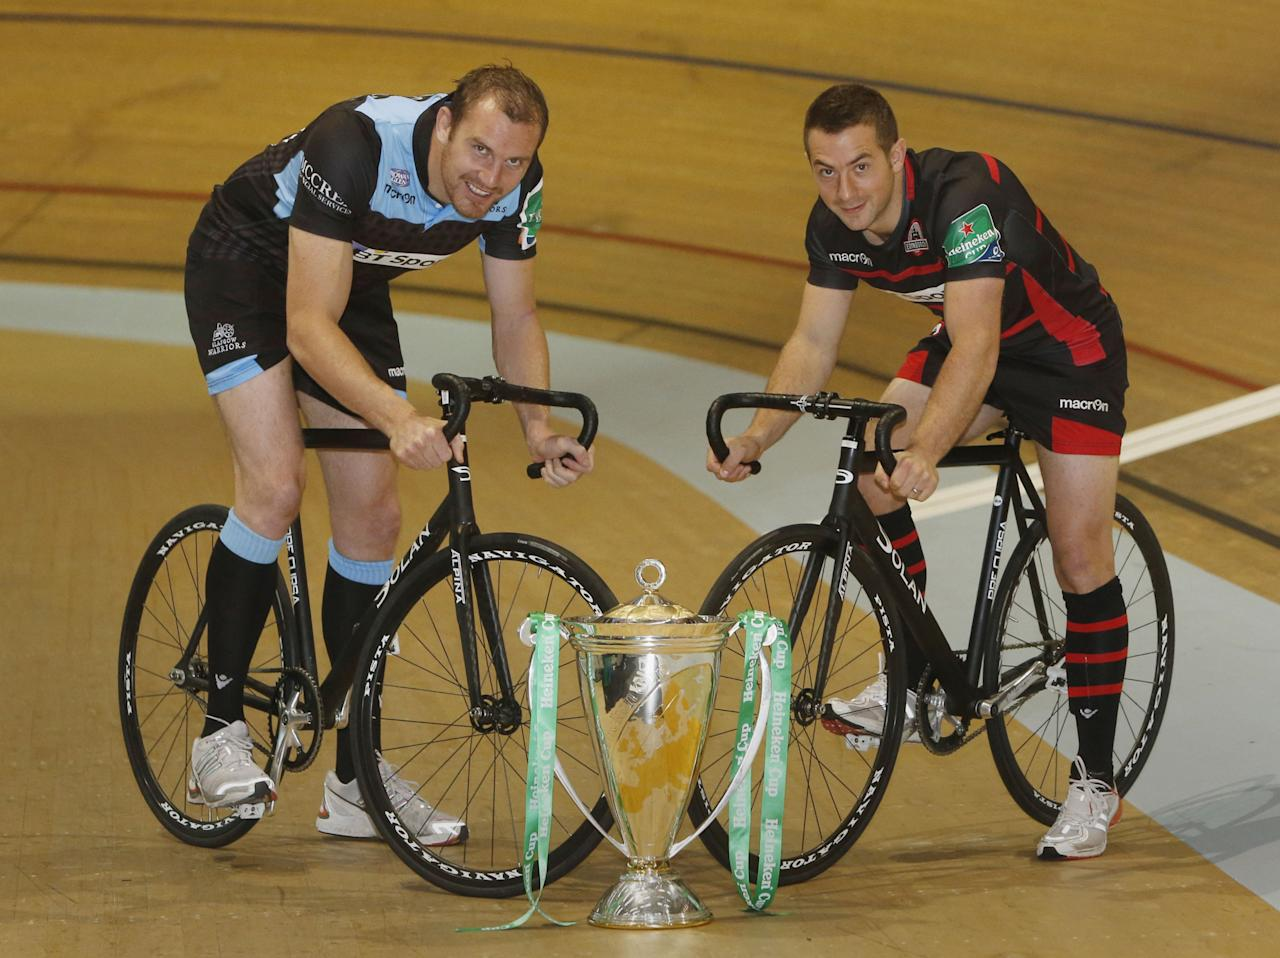 Glasgow Warriors Captain Alastair Kellock (left) and Edinburgh Rugby Captain Greig Laidlaw (right) during the Scottish Heineken Cup launch at the Sir Chris Hoy Velodrome, Glasgow.